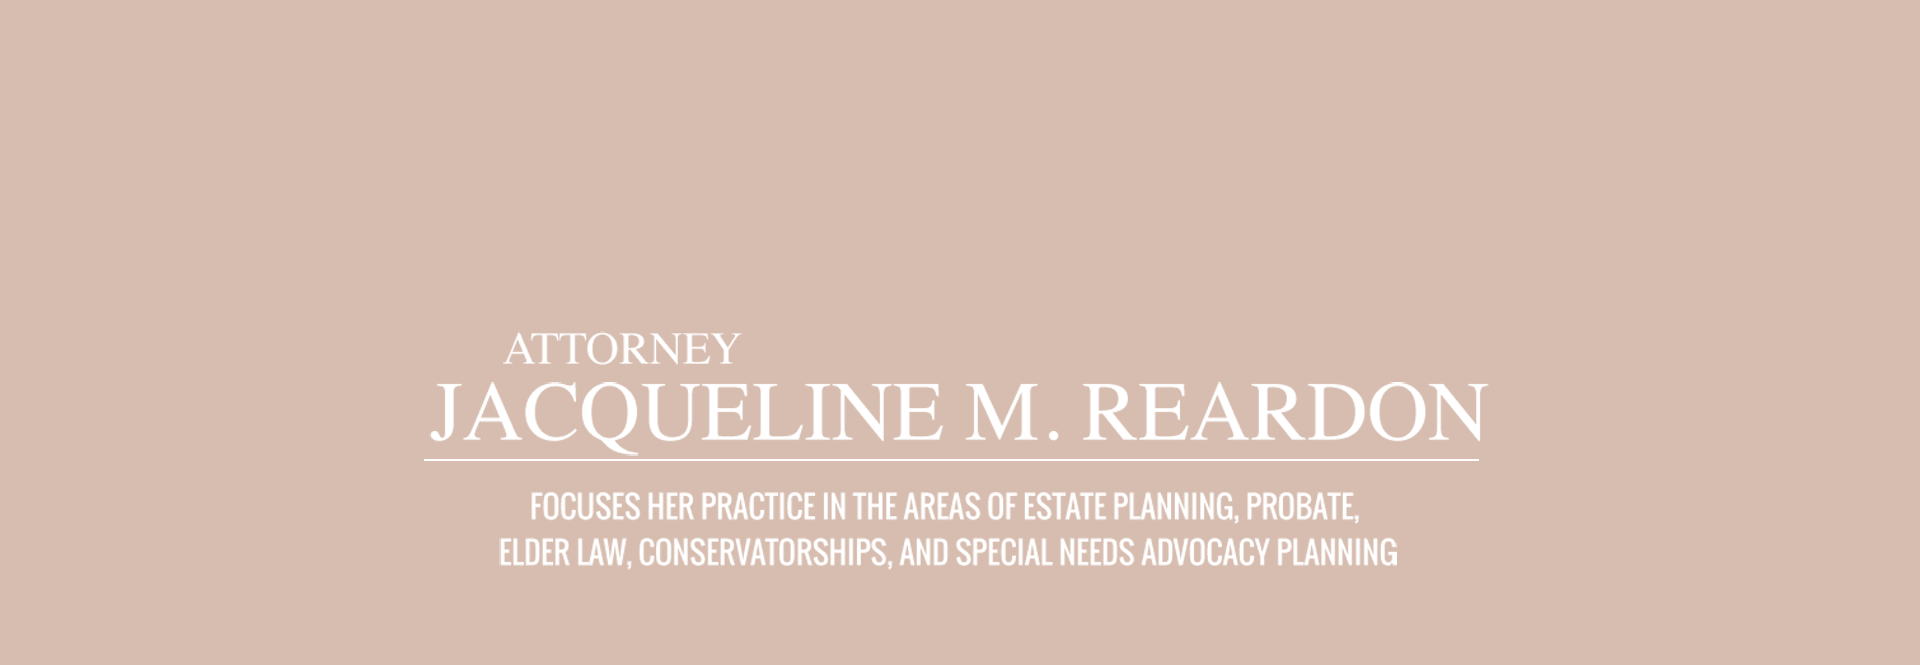 Attorney Jacqueline M. Reardon Focuses her Practice in the areas of Estate Planning, Probate, Elder Law, Conservatorships, and Special Needs Advocacy Planning